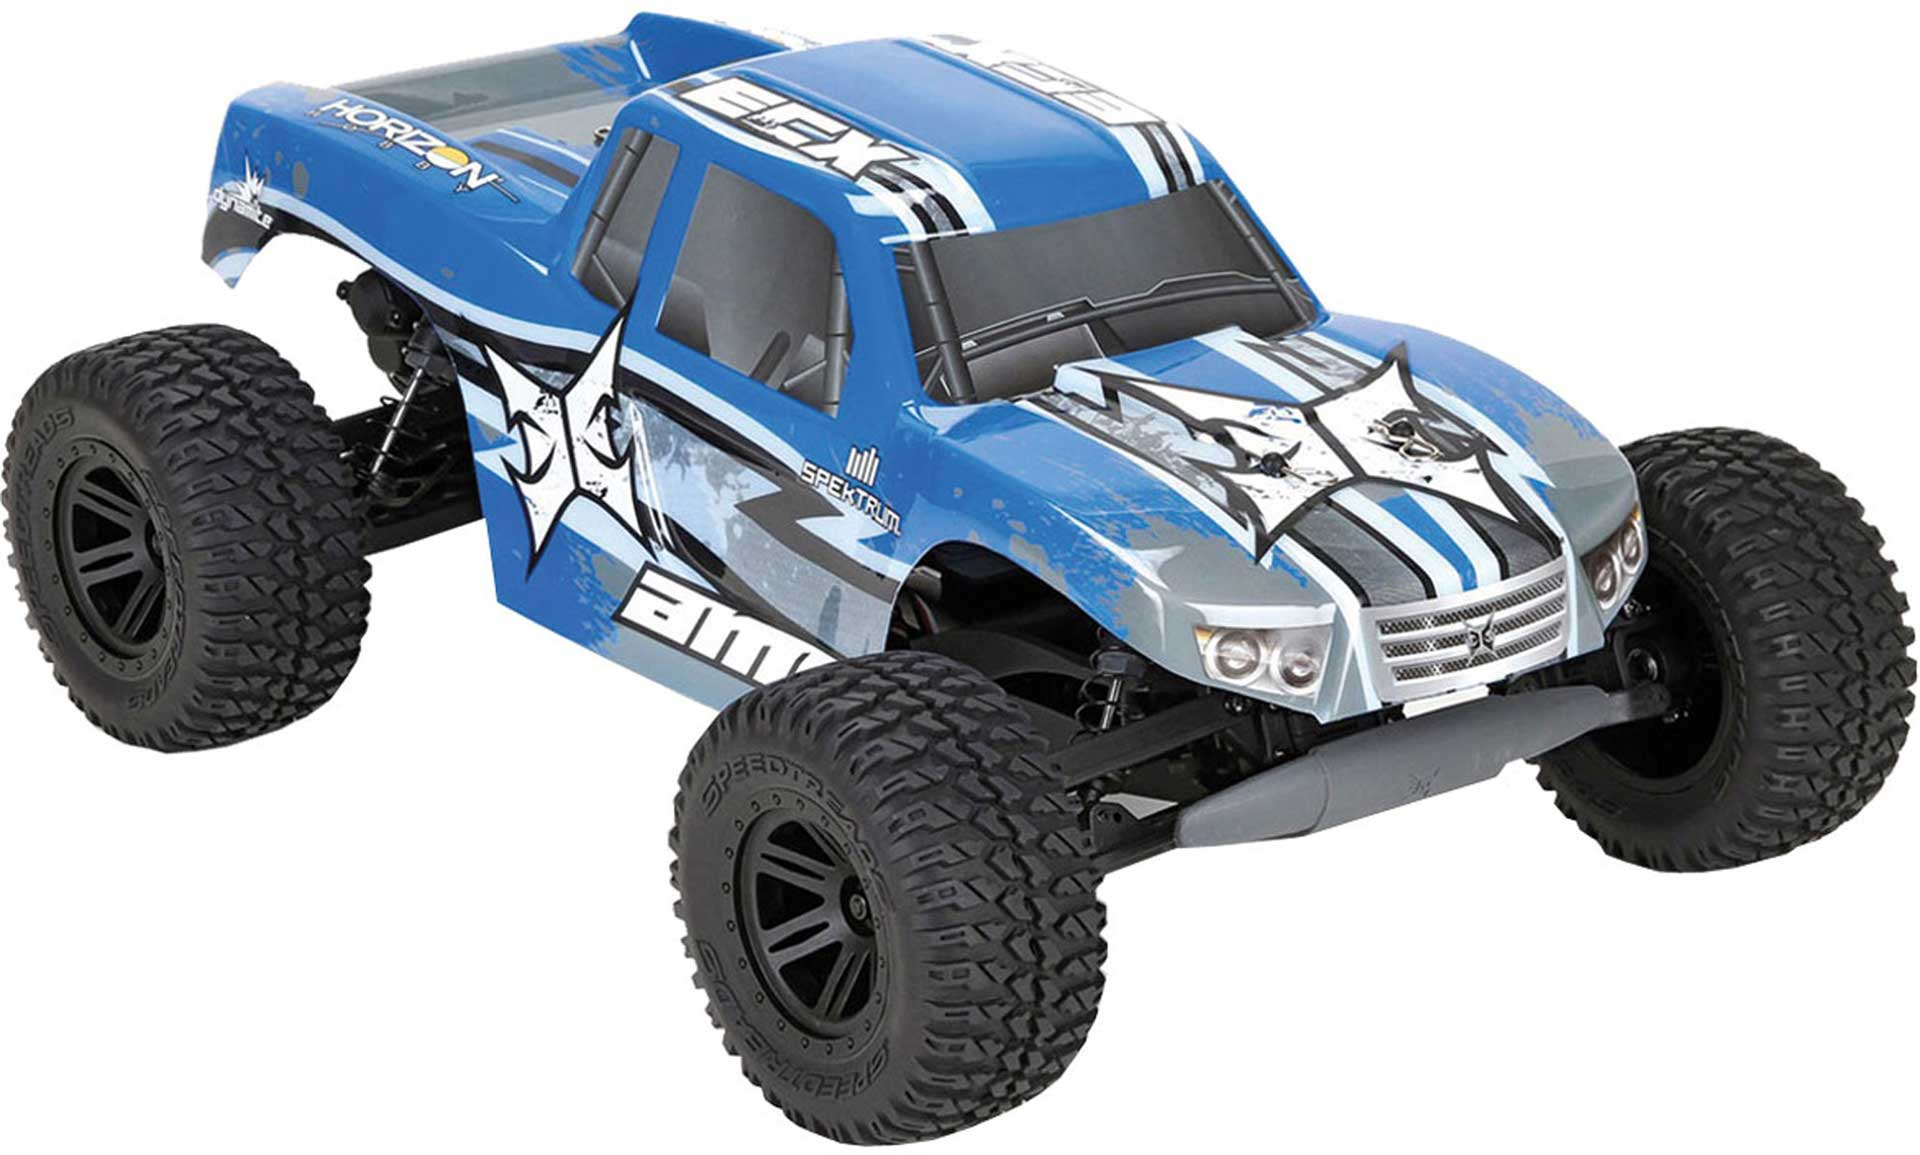 ECX AMP MT 2WD MONSTER TRUCK 1/10 BUILD-TO-DRIVE KIT